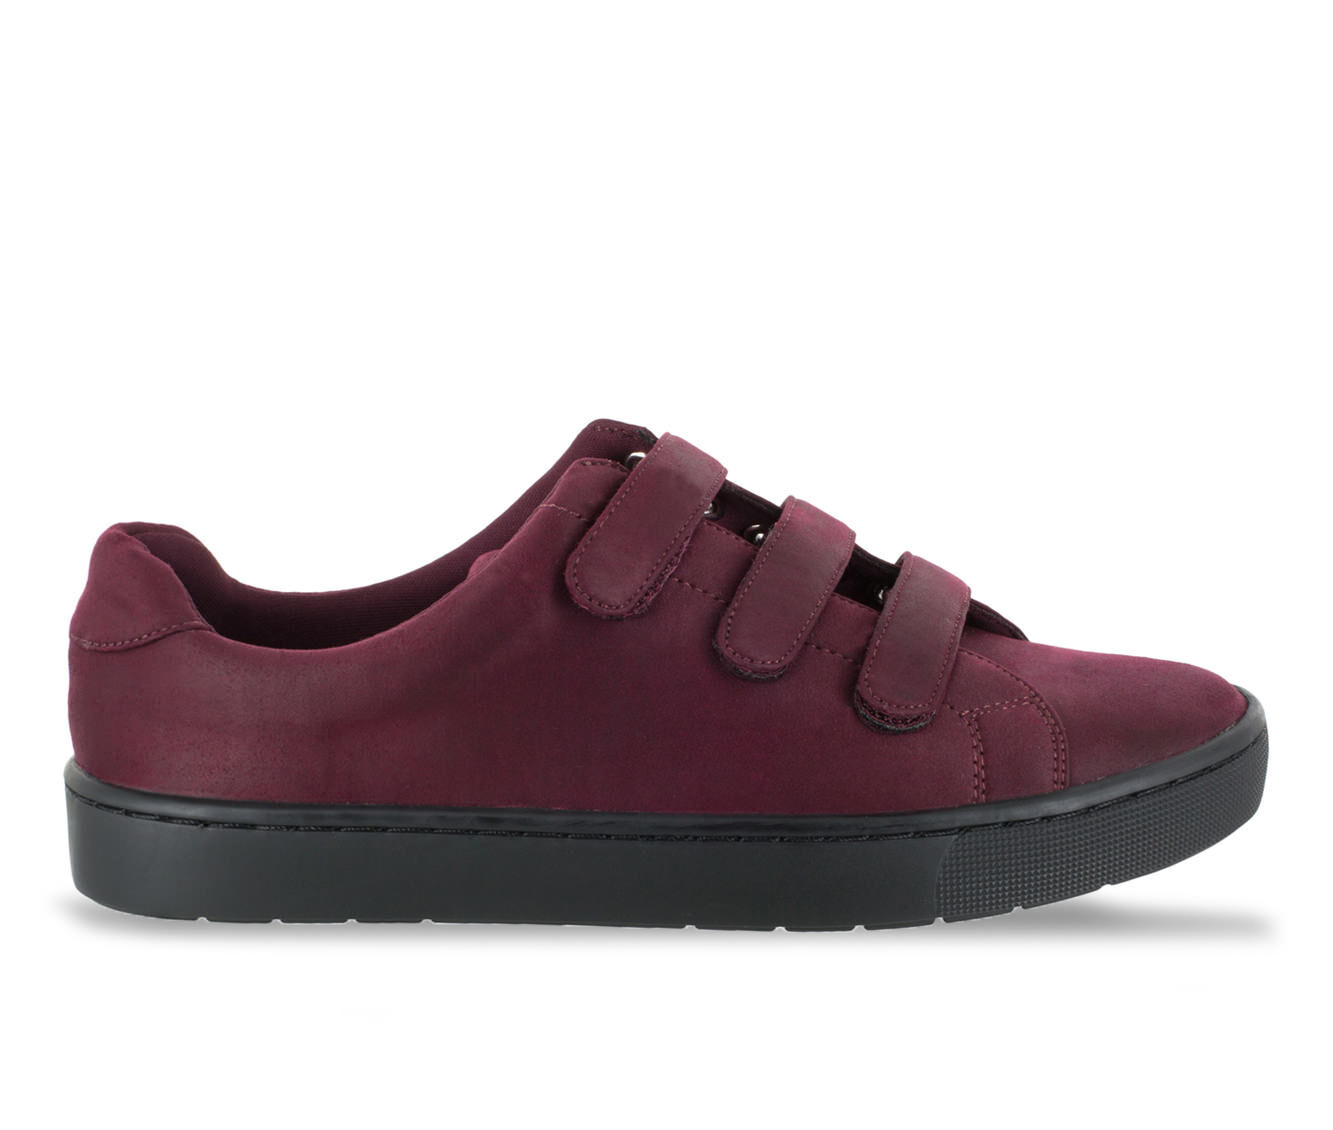 purchase comfortable authentic Women's Easy Street Strive Burgundy Suede